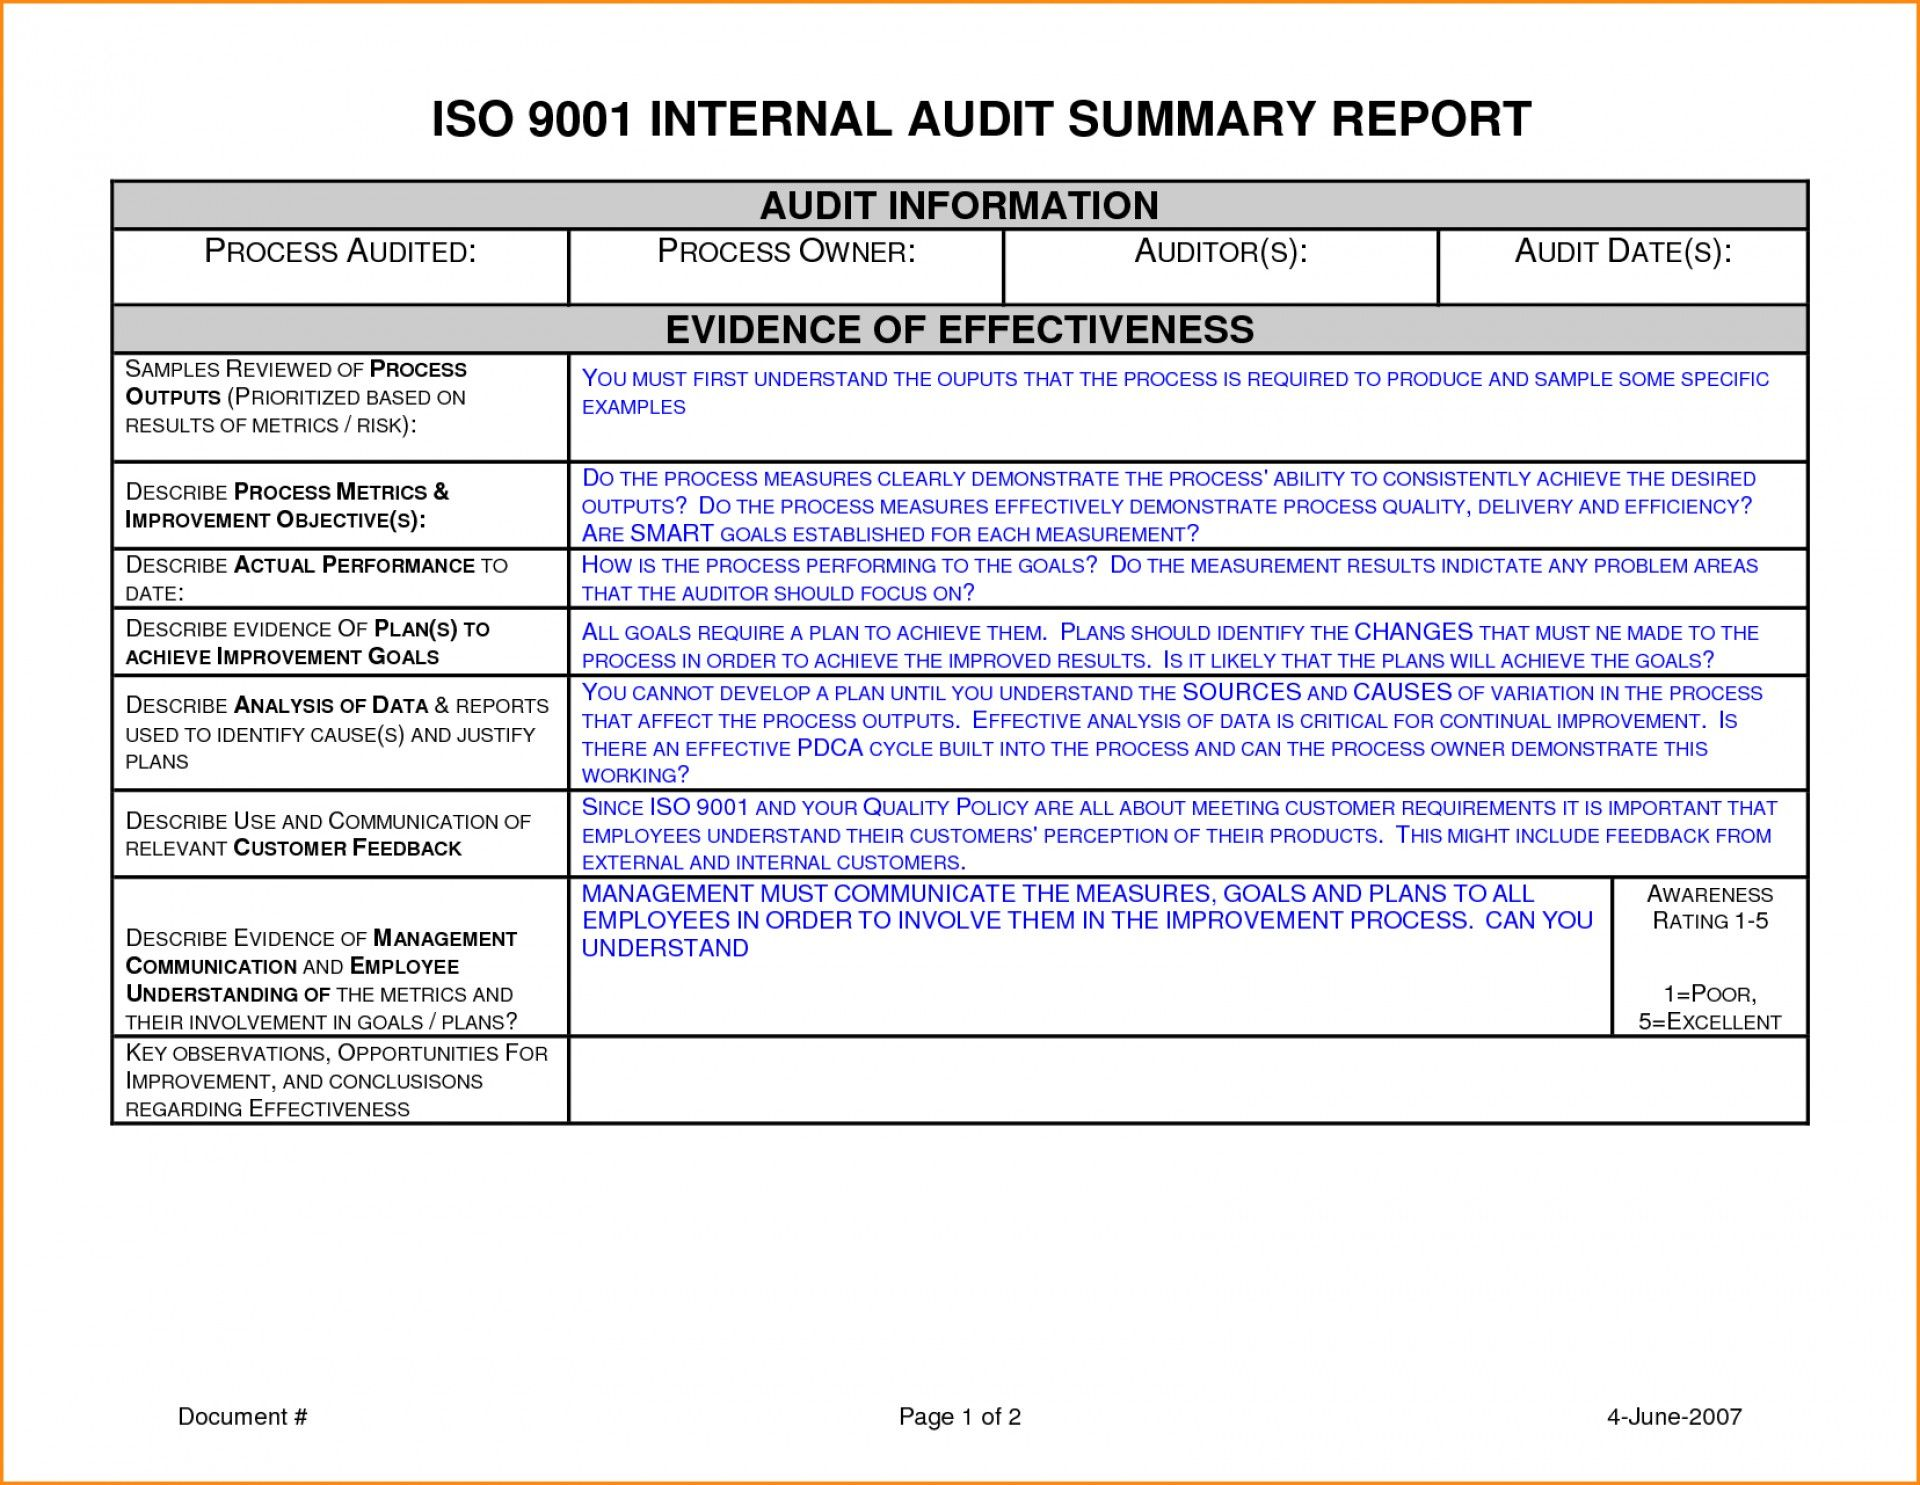 009 Audit Report Template Internal Stupendous Ideas Word Pdf With